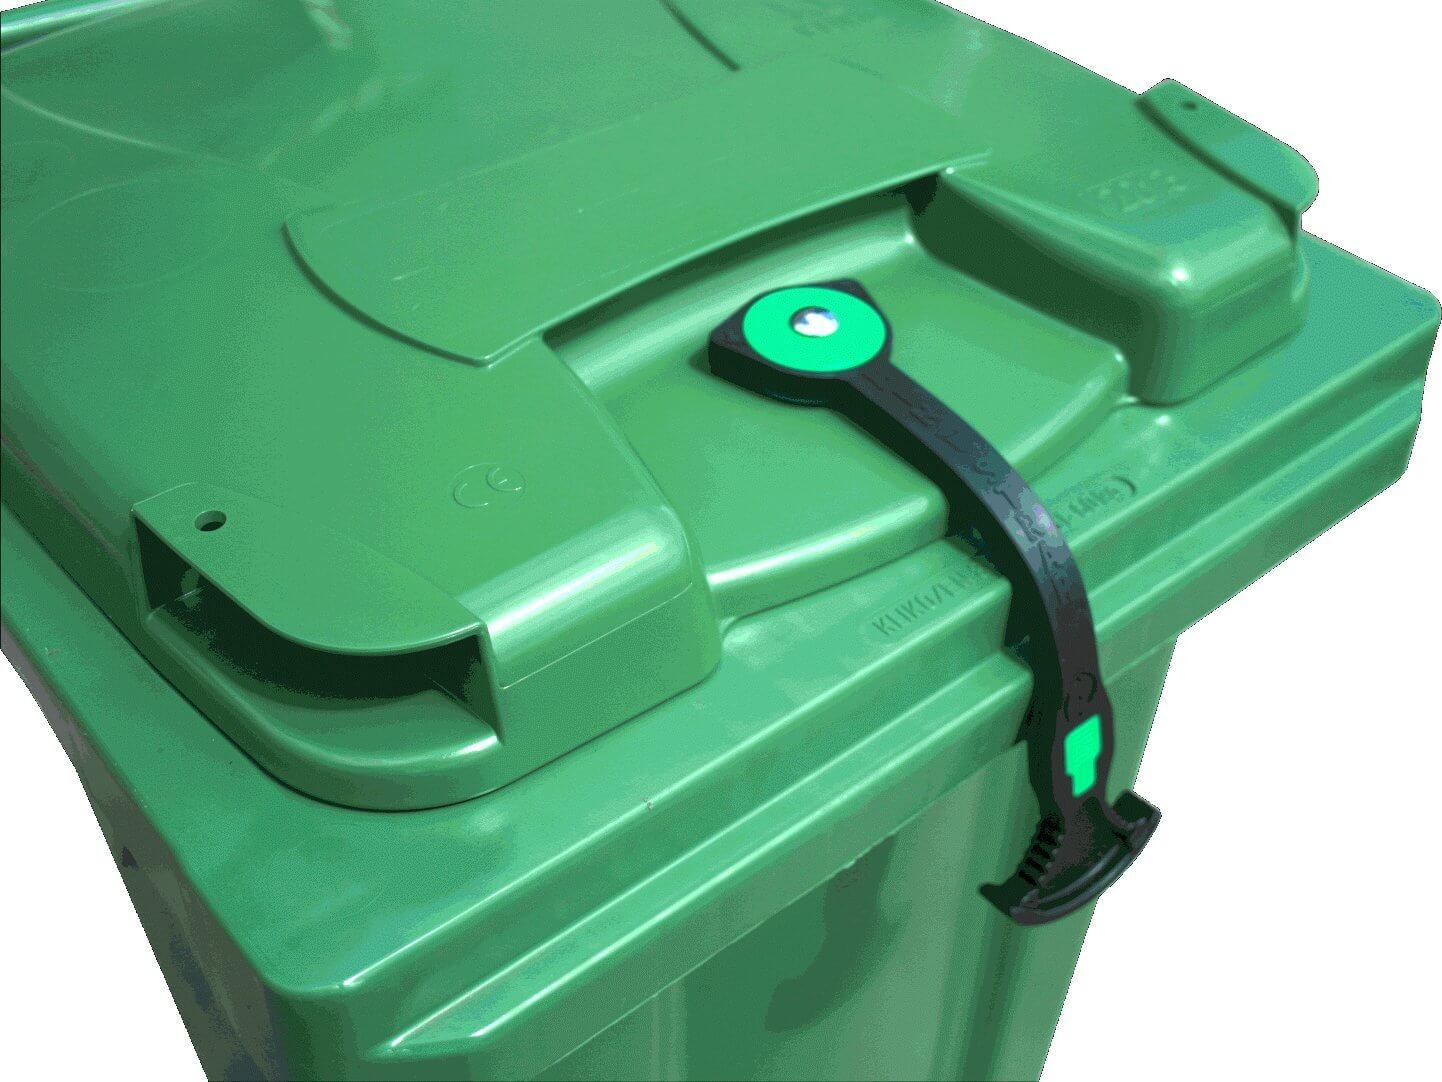 A BinStrap holding the lid on a green rubbish bin.